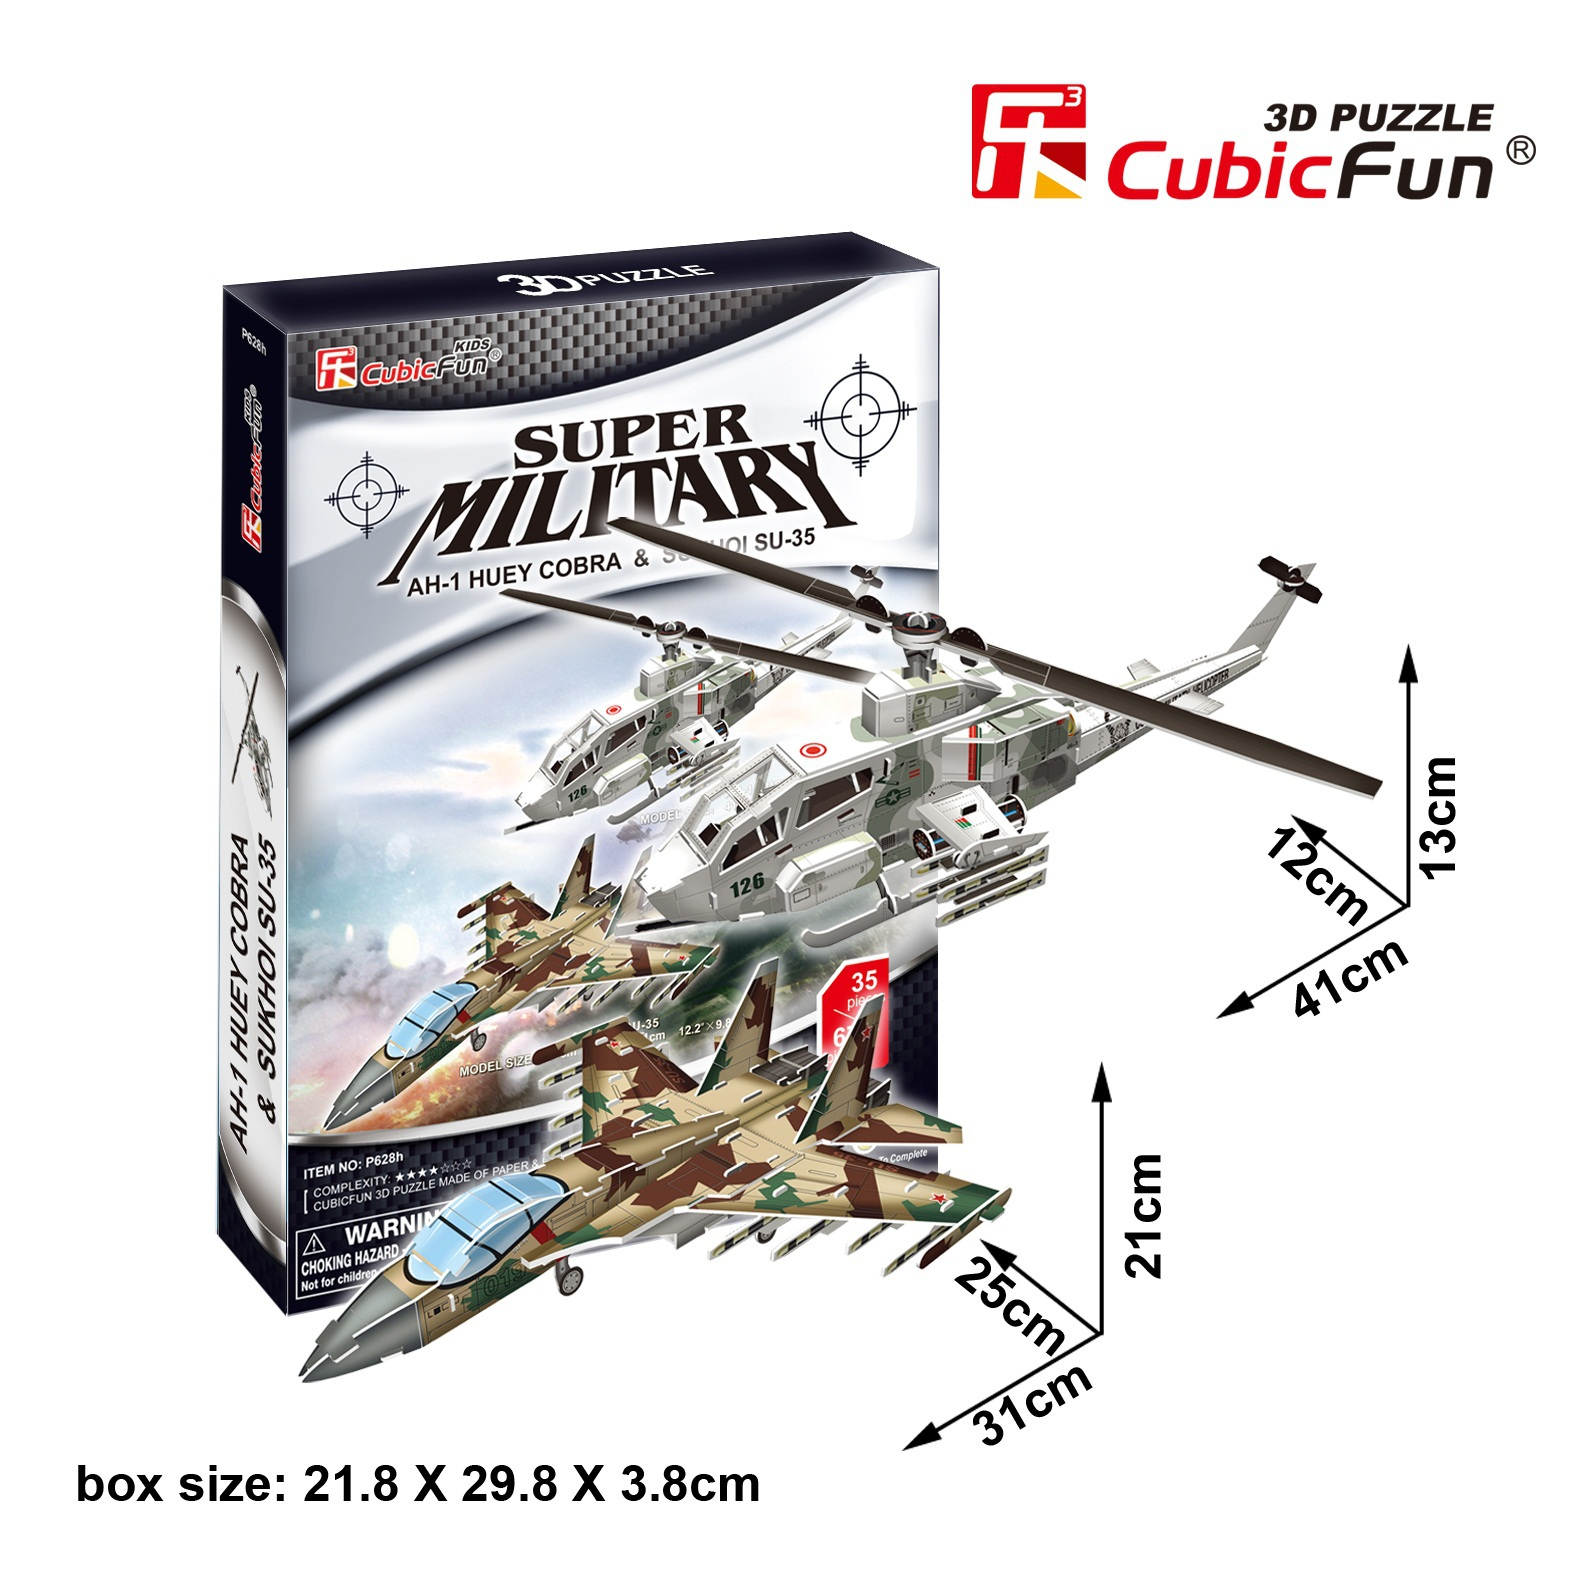 Candice guo toy birthday gift 3D paper puzzle assemble building model game stereomodel P628H cobra helicopter fighter 2pcs/set